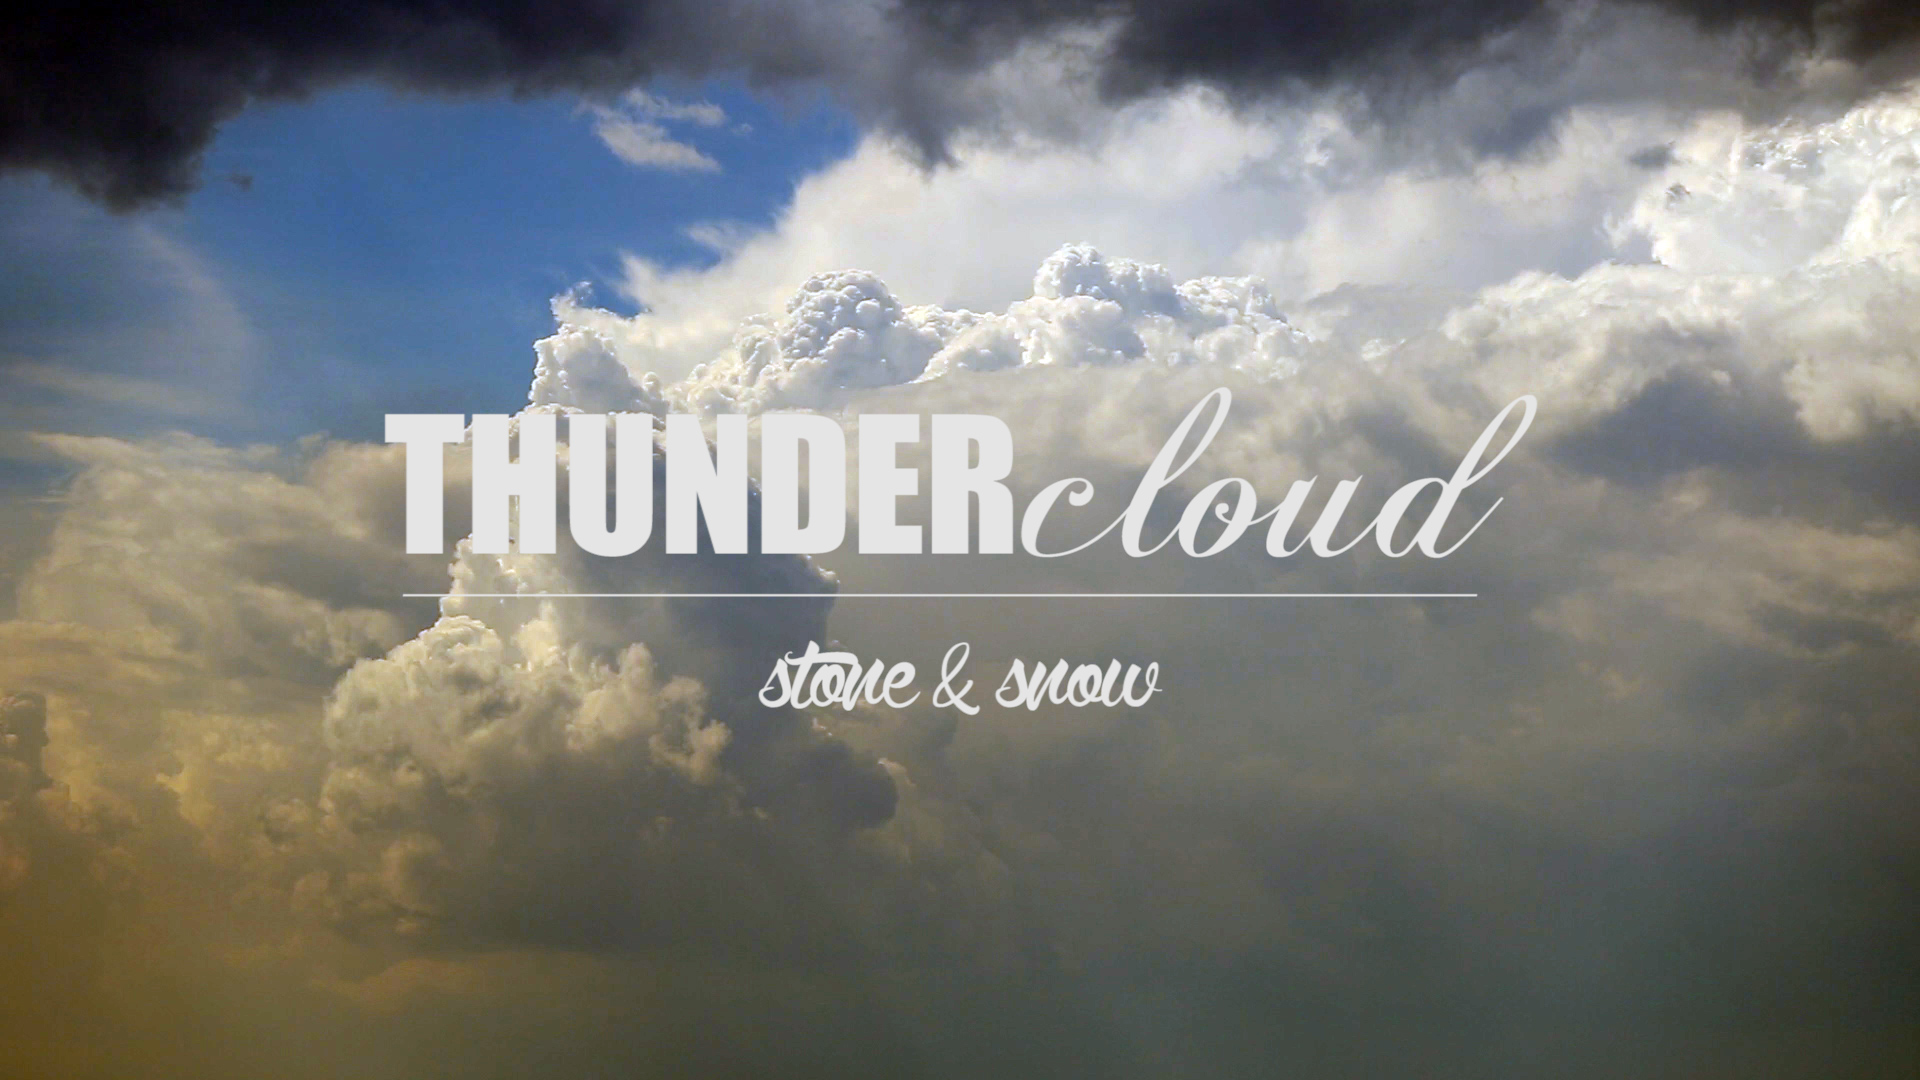 Thundercloud – New Music Video!